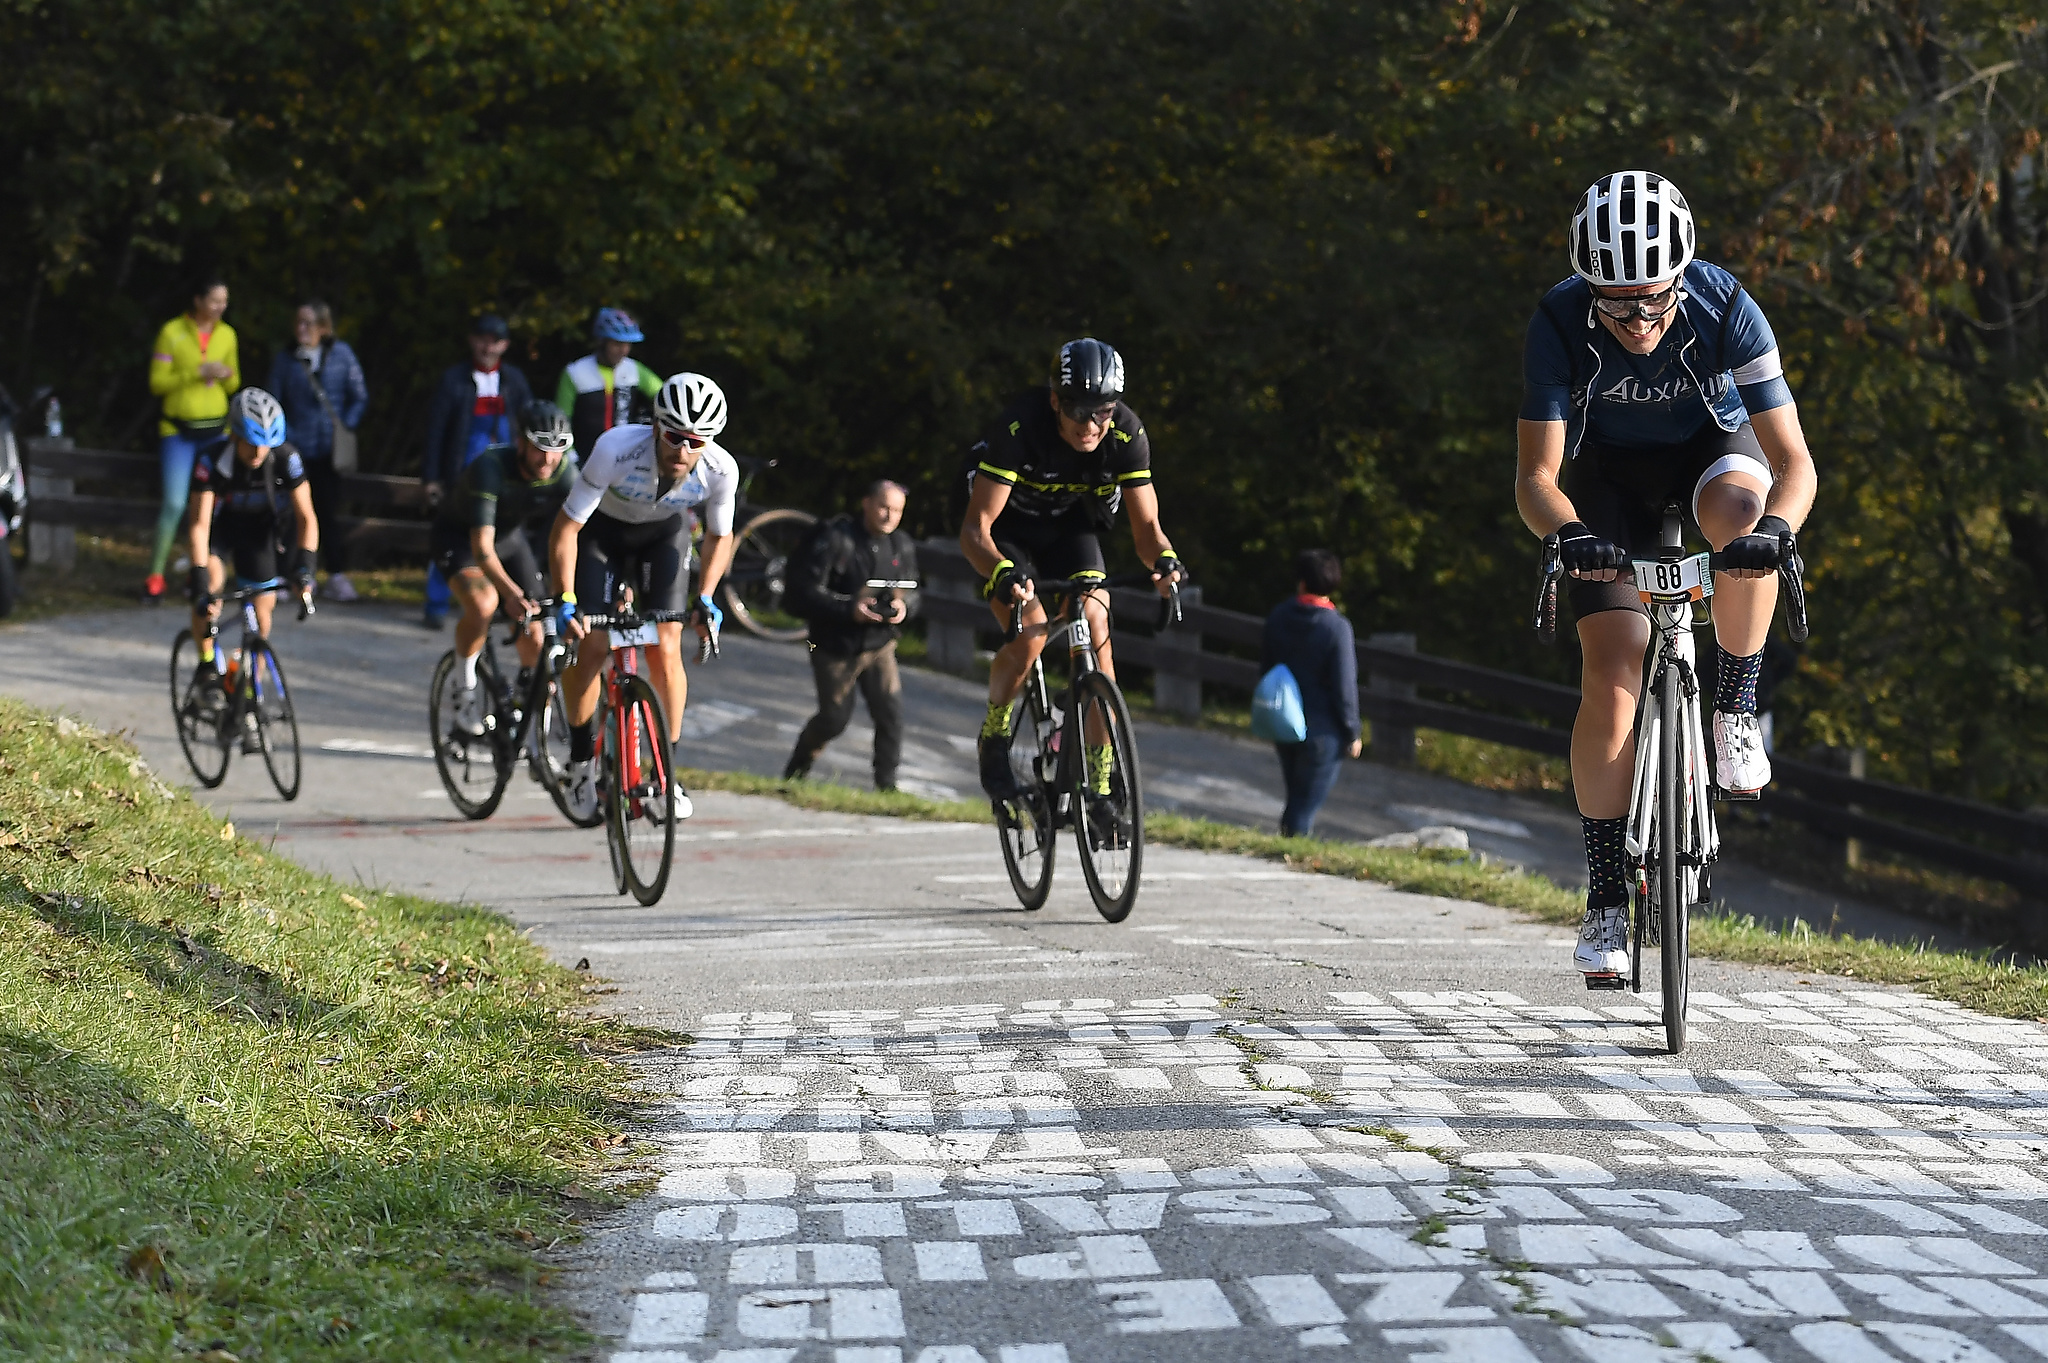 The Gran Fondo Il Lombardia returns on October 13th with news and promos!